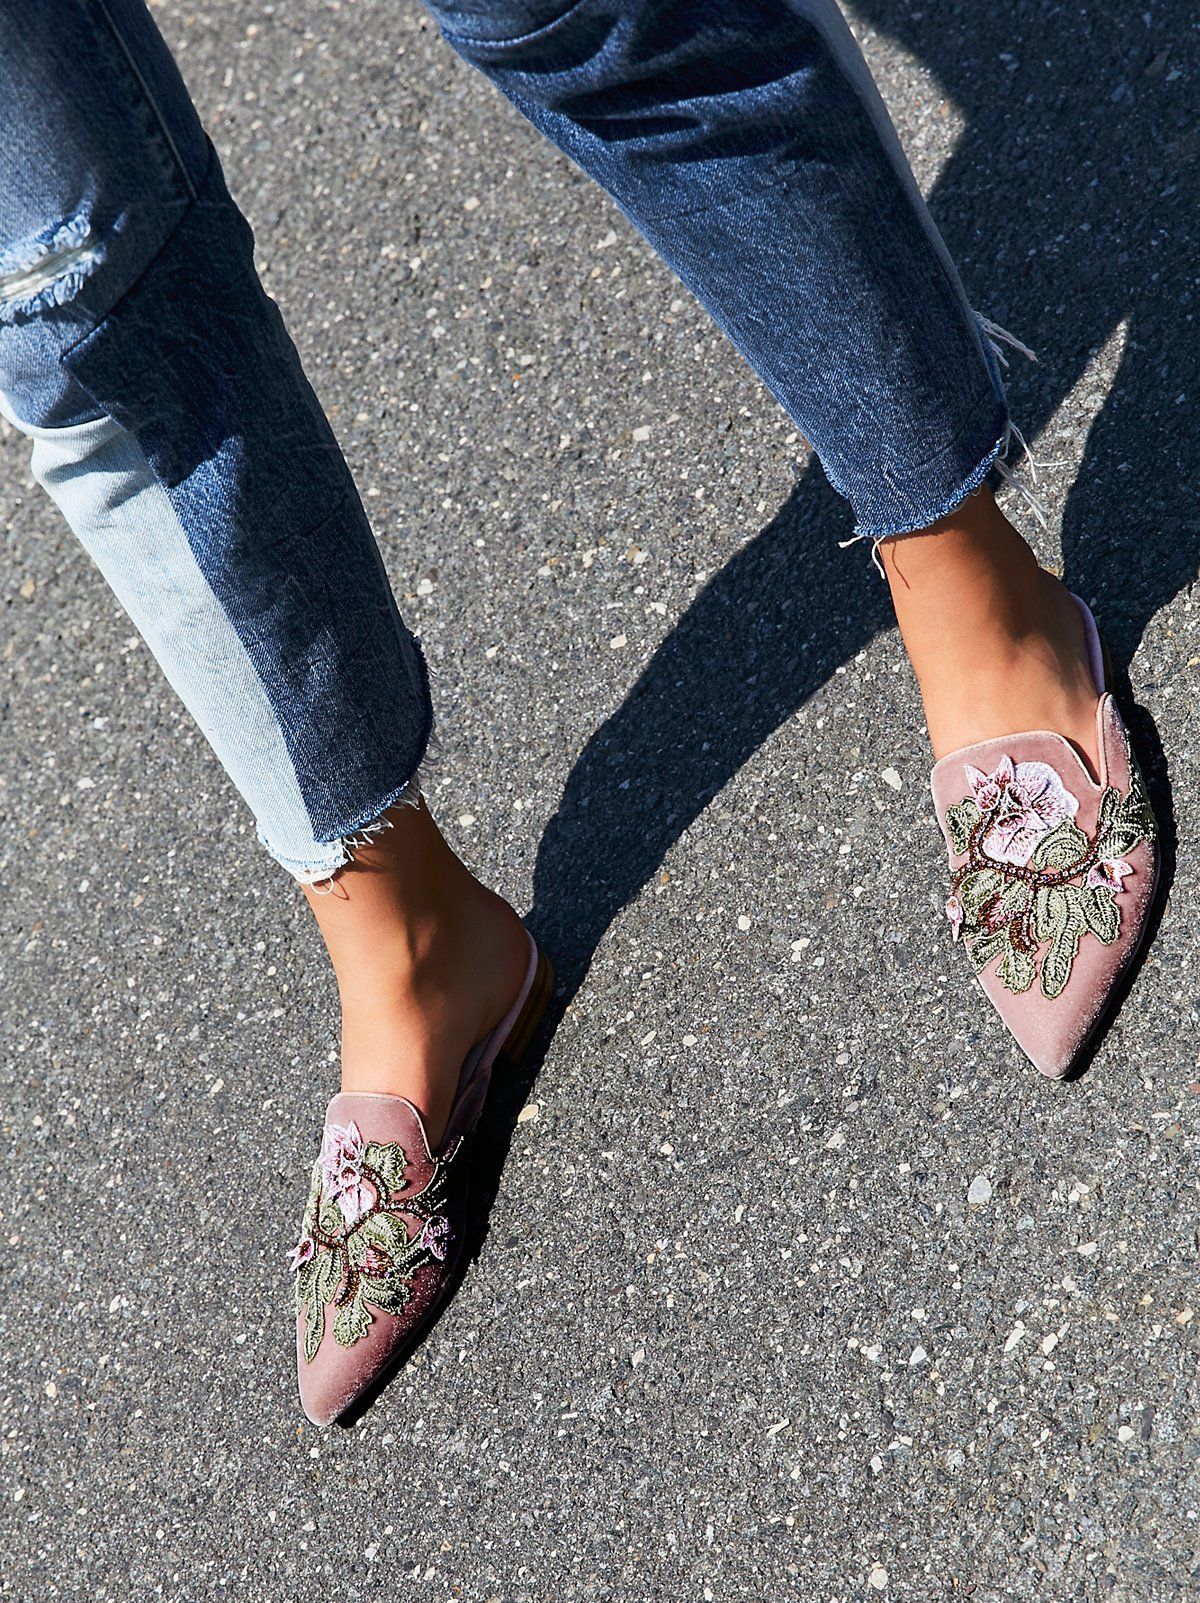 Women's Shoes: Summer Shoes, Fall Shoes & More 39